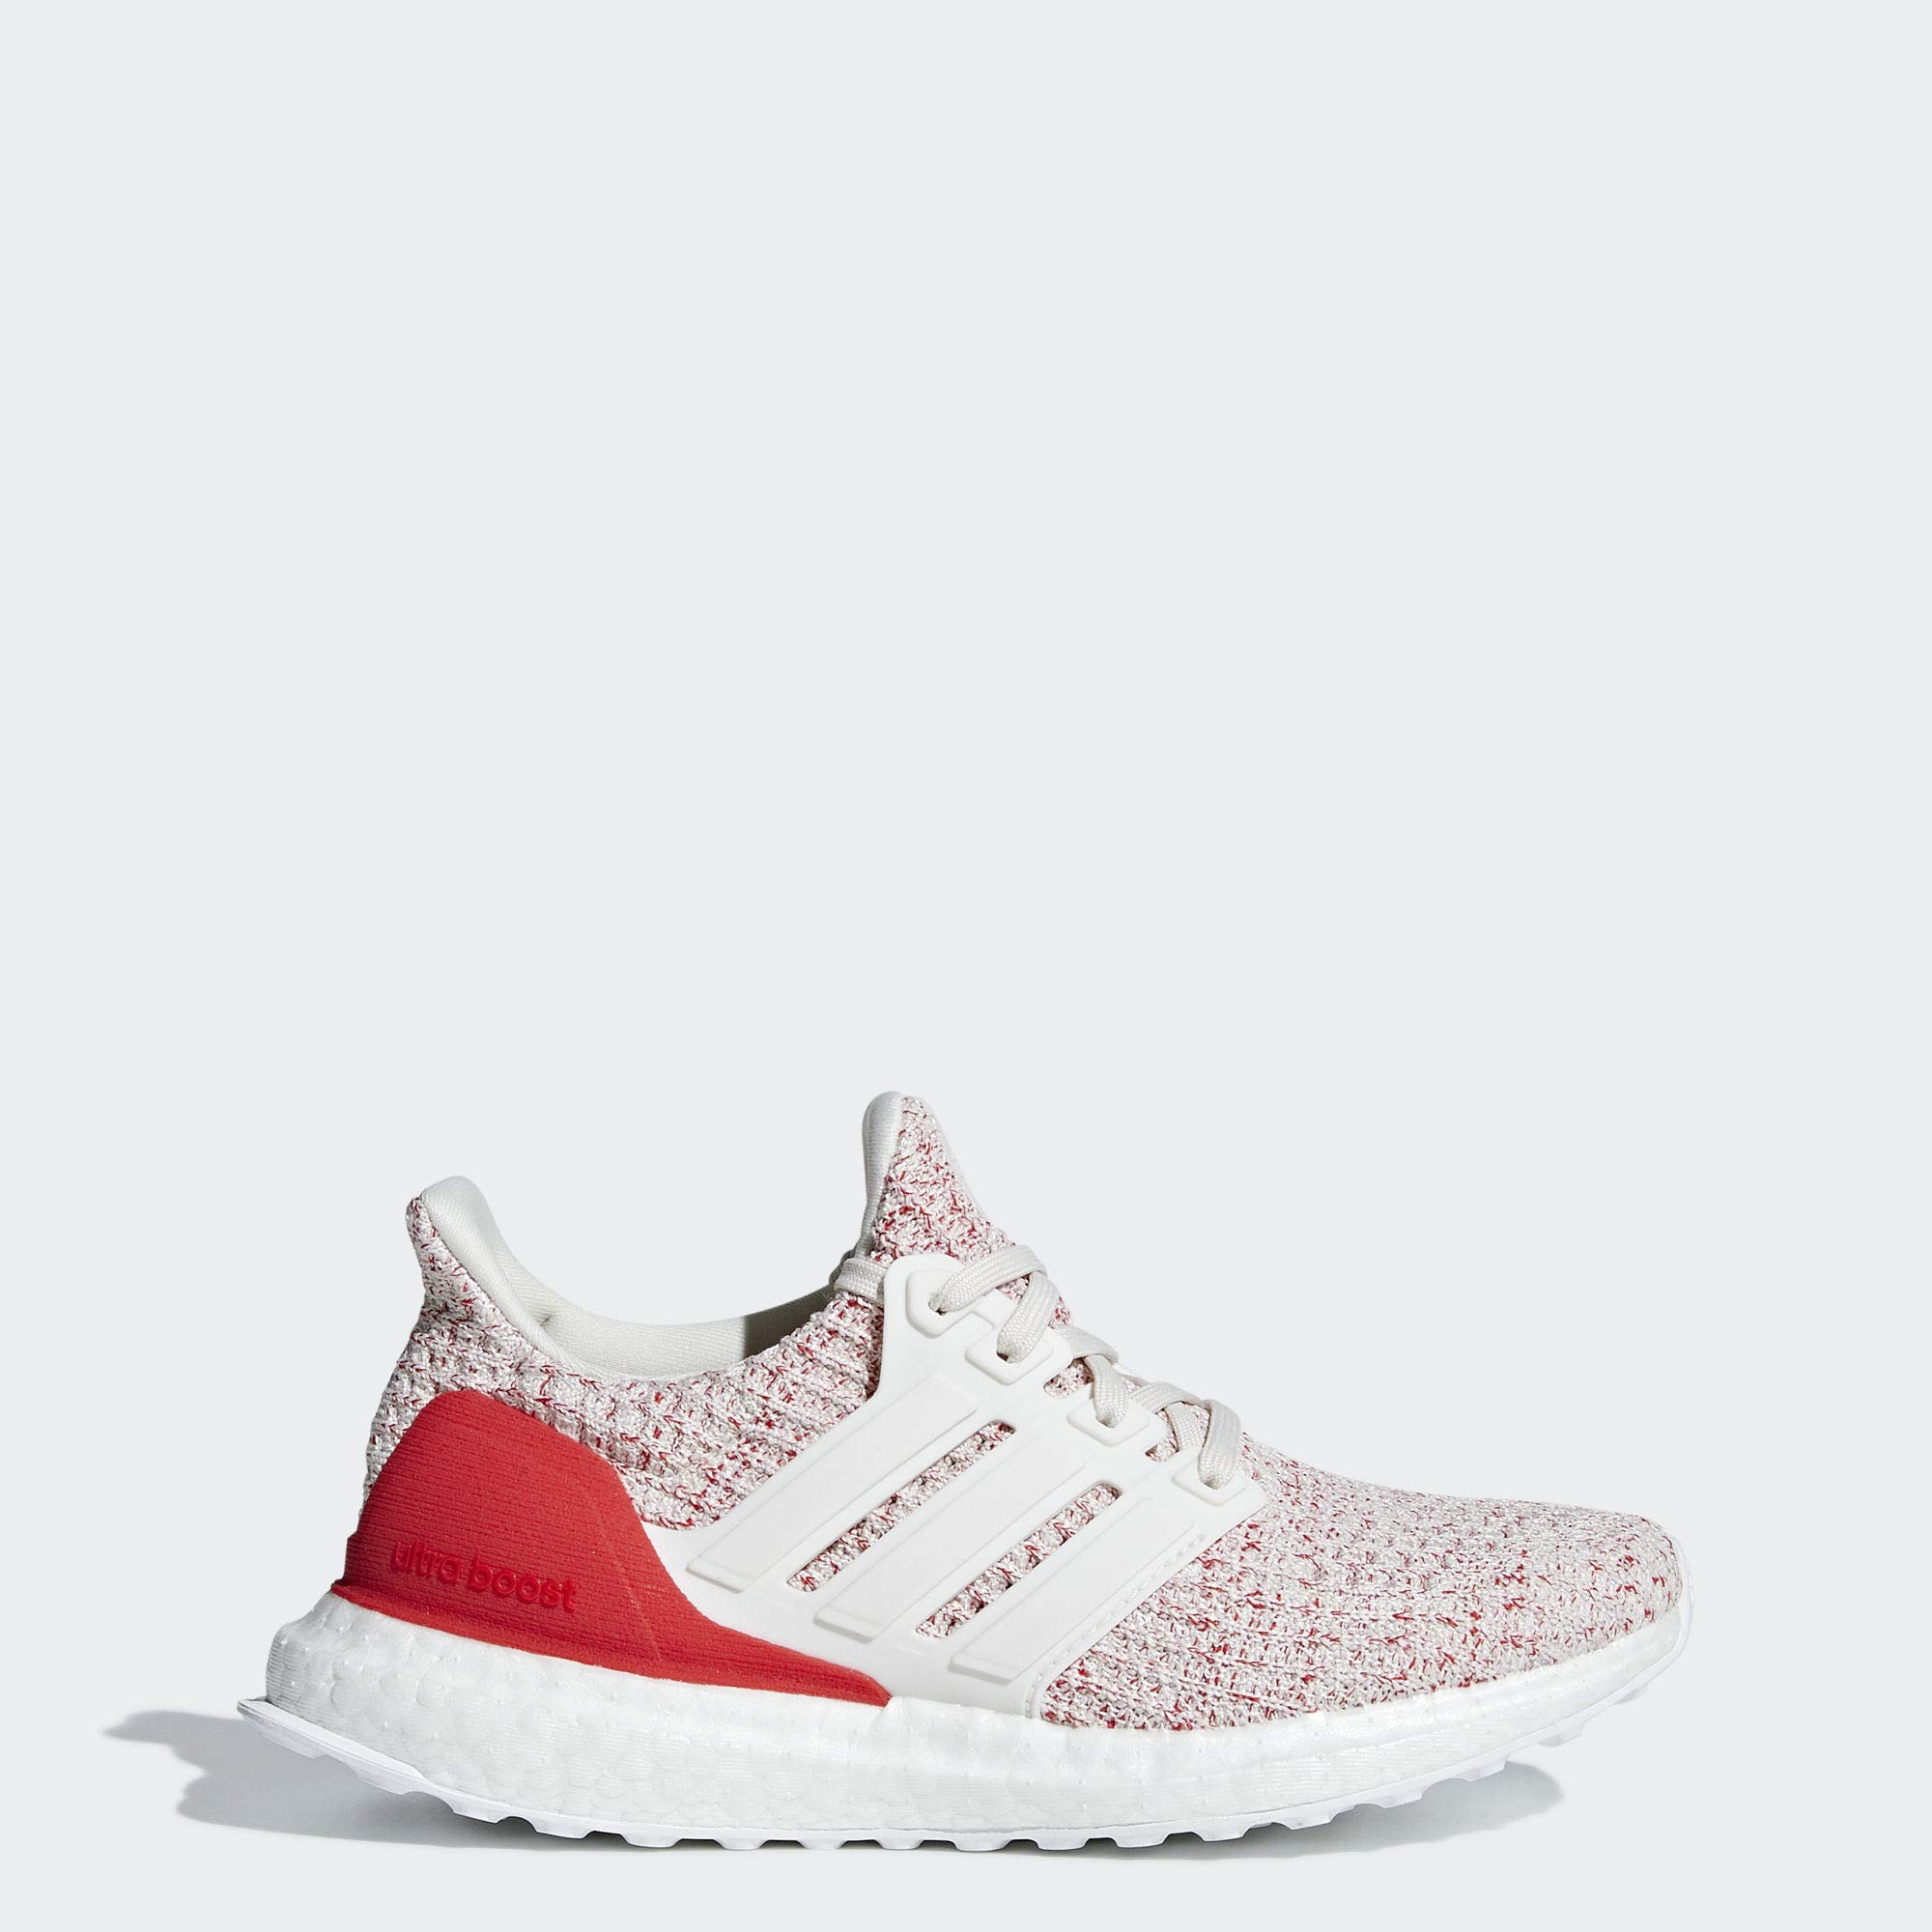 adidas Unisex Ultraboost, Chalk White/Active red, 6 M US Big Kid by adidas